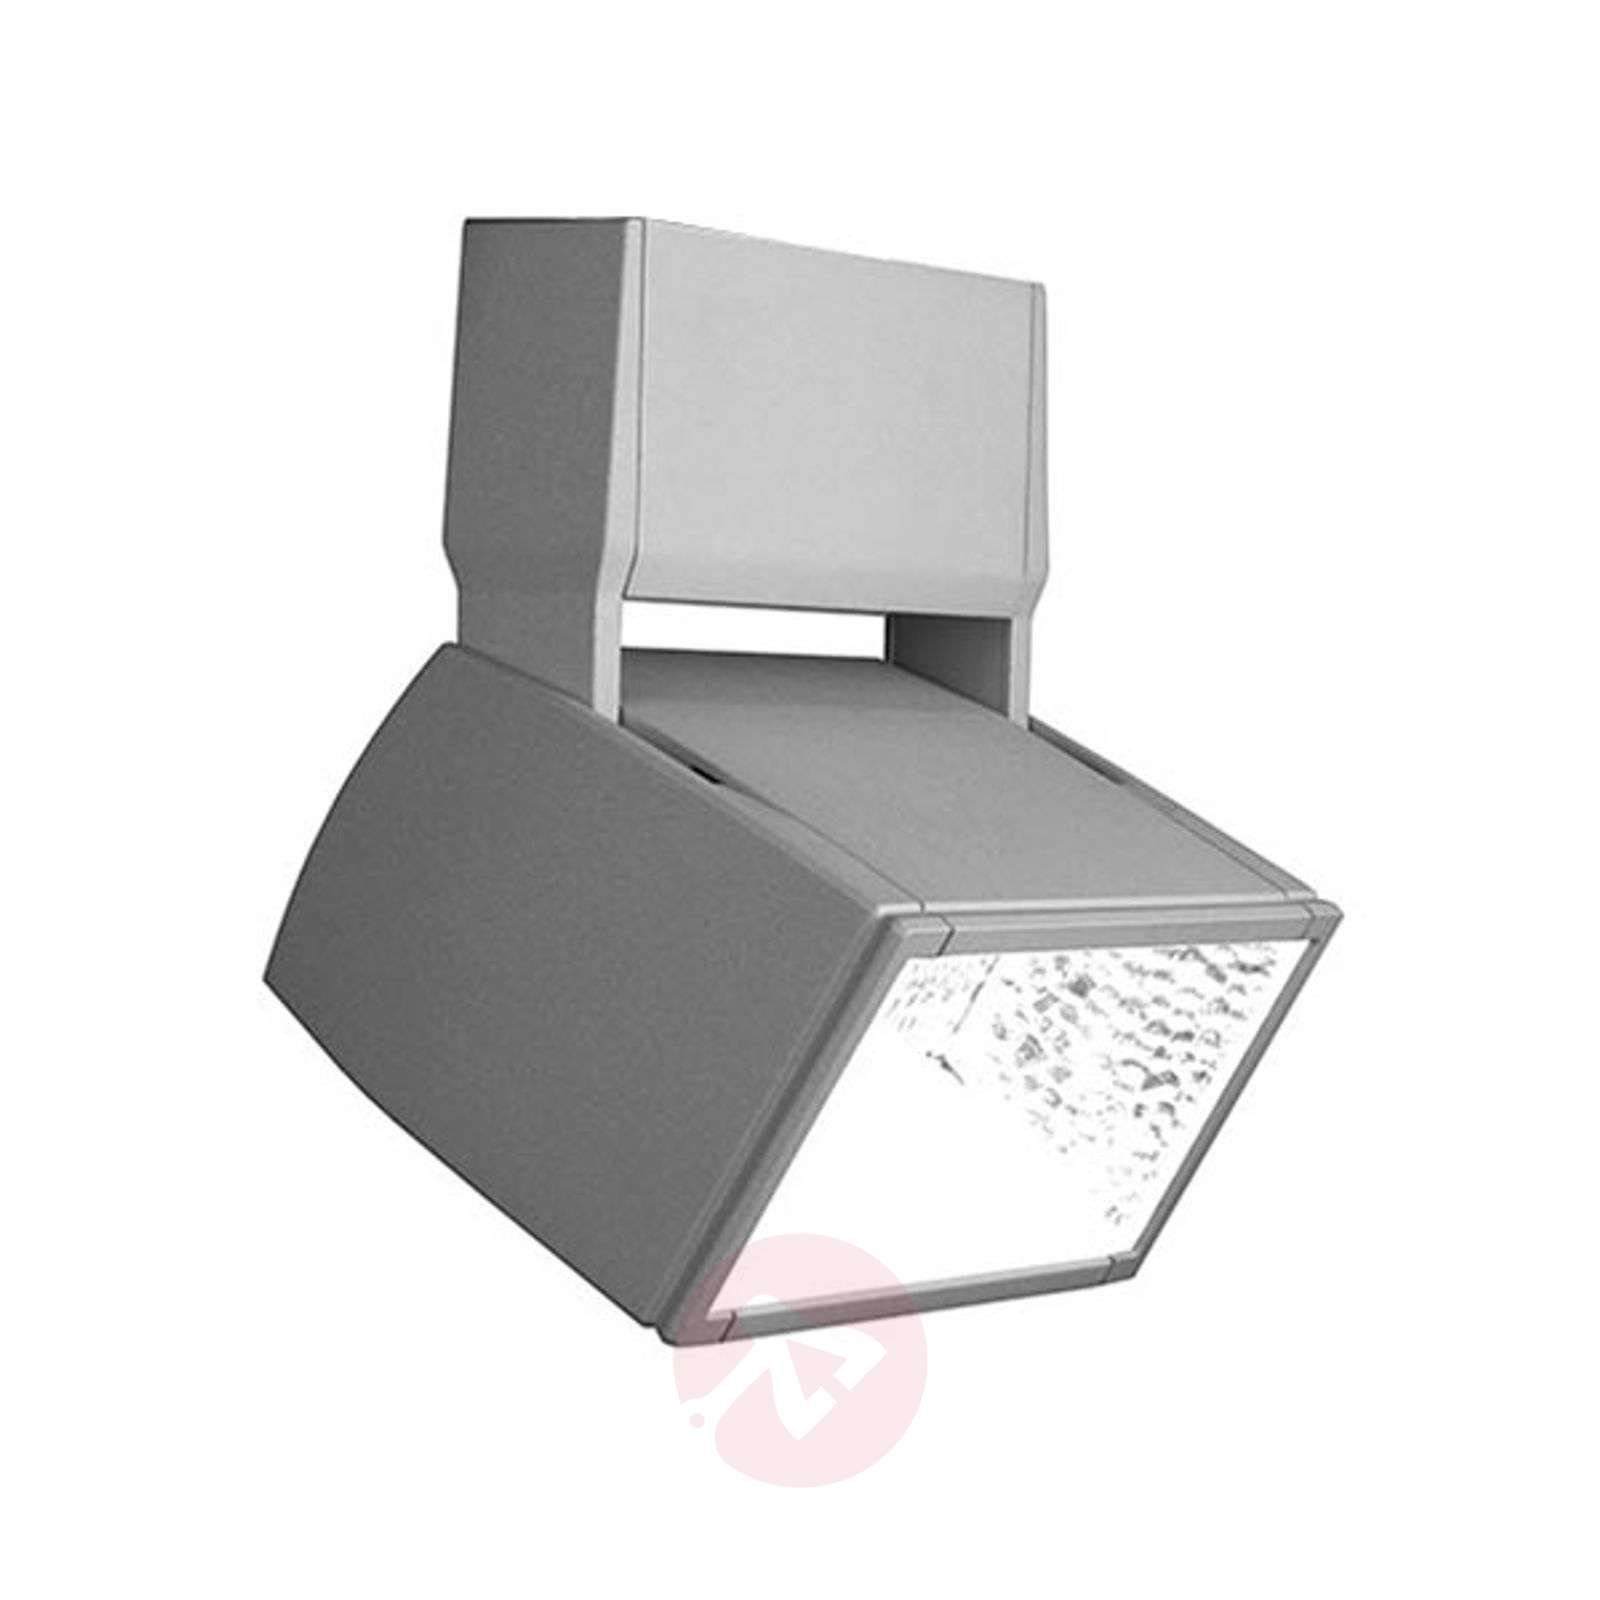 Spot LED pivotant EuroLED, 50 W, 2 700 K-6028077-01